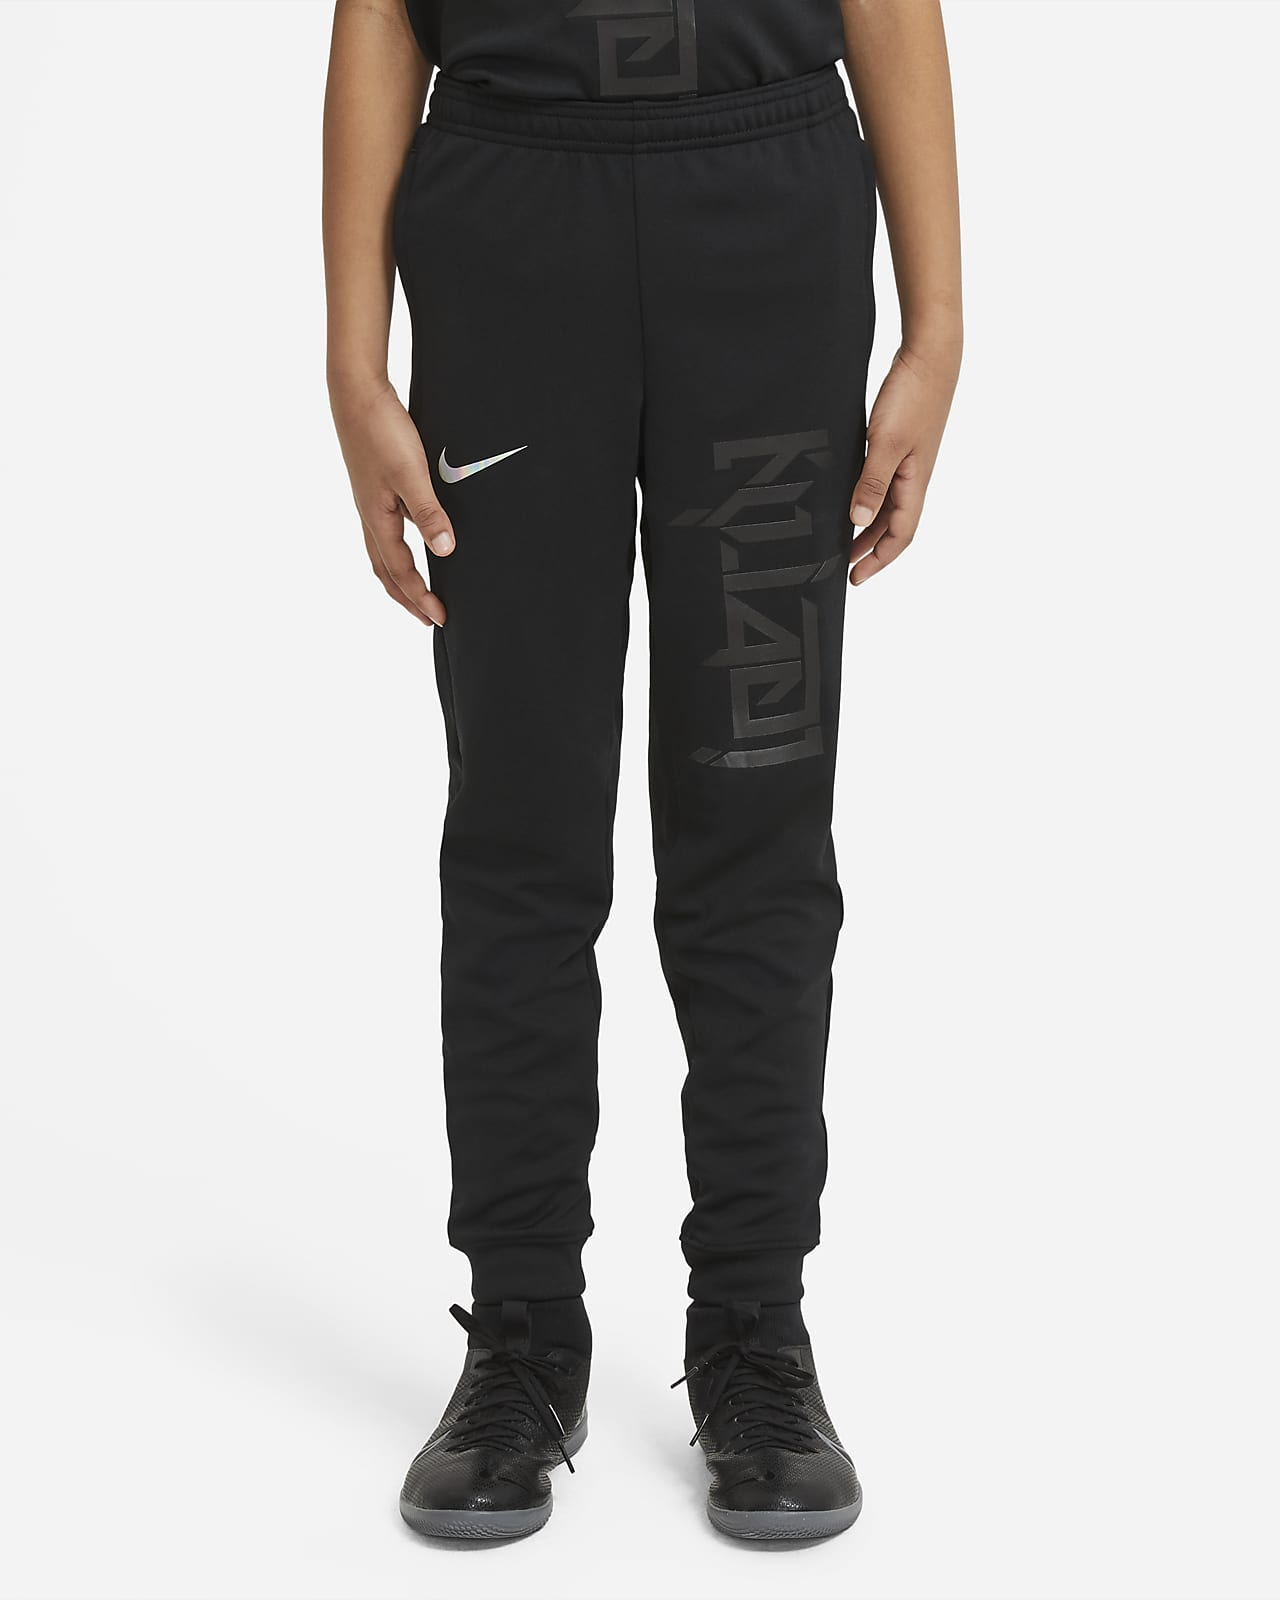 Nike Dri-FIT Kylian Mbappé Older Kids' Knit Football Pants